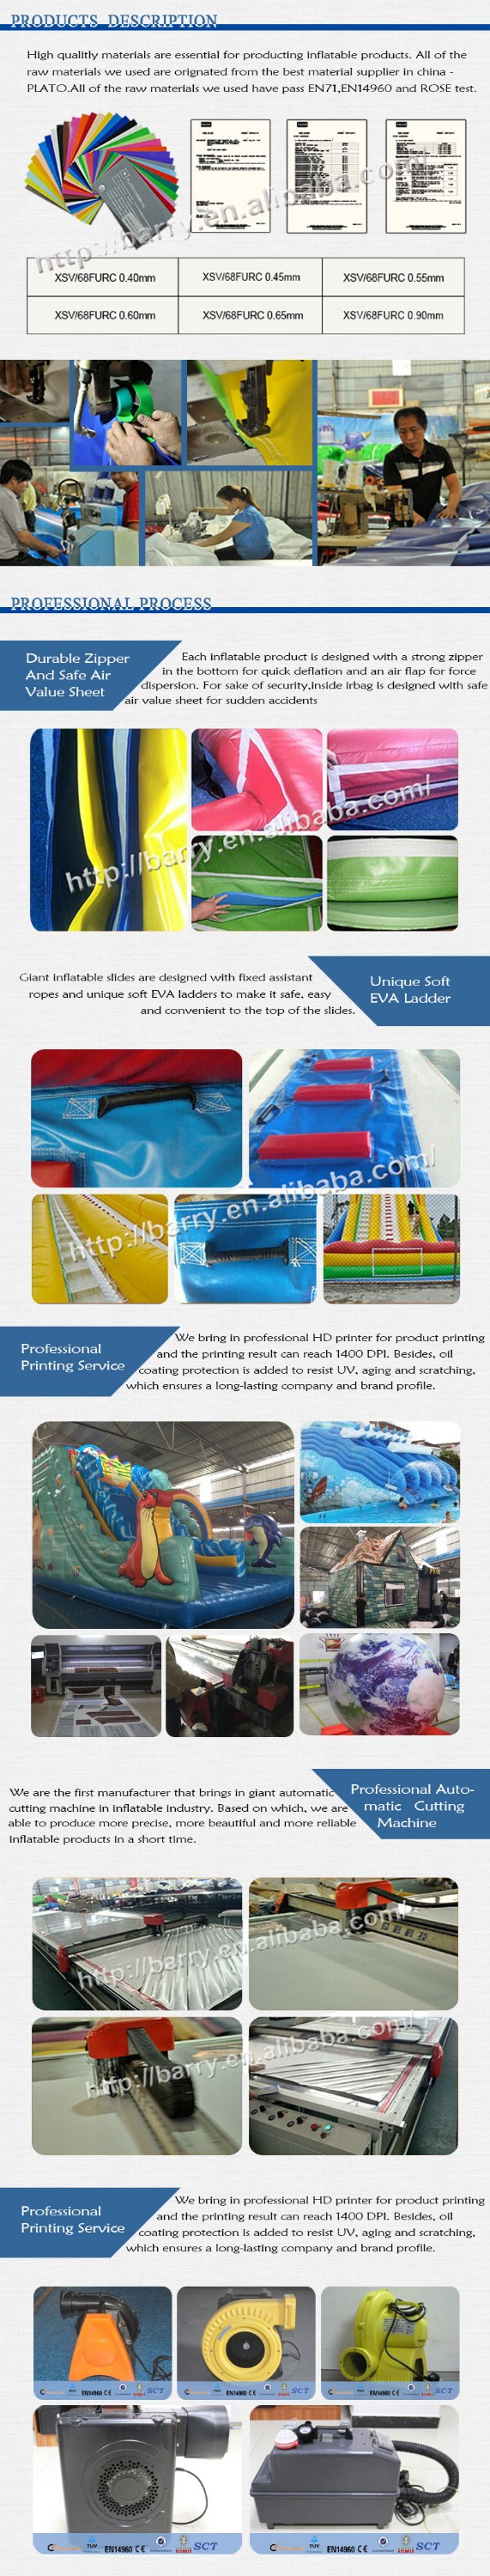 temporary surgical inflatable medical tent for hospital